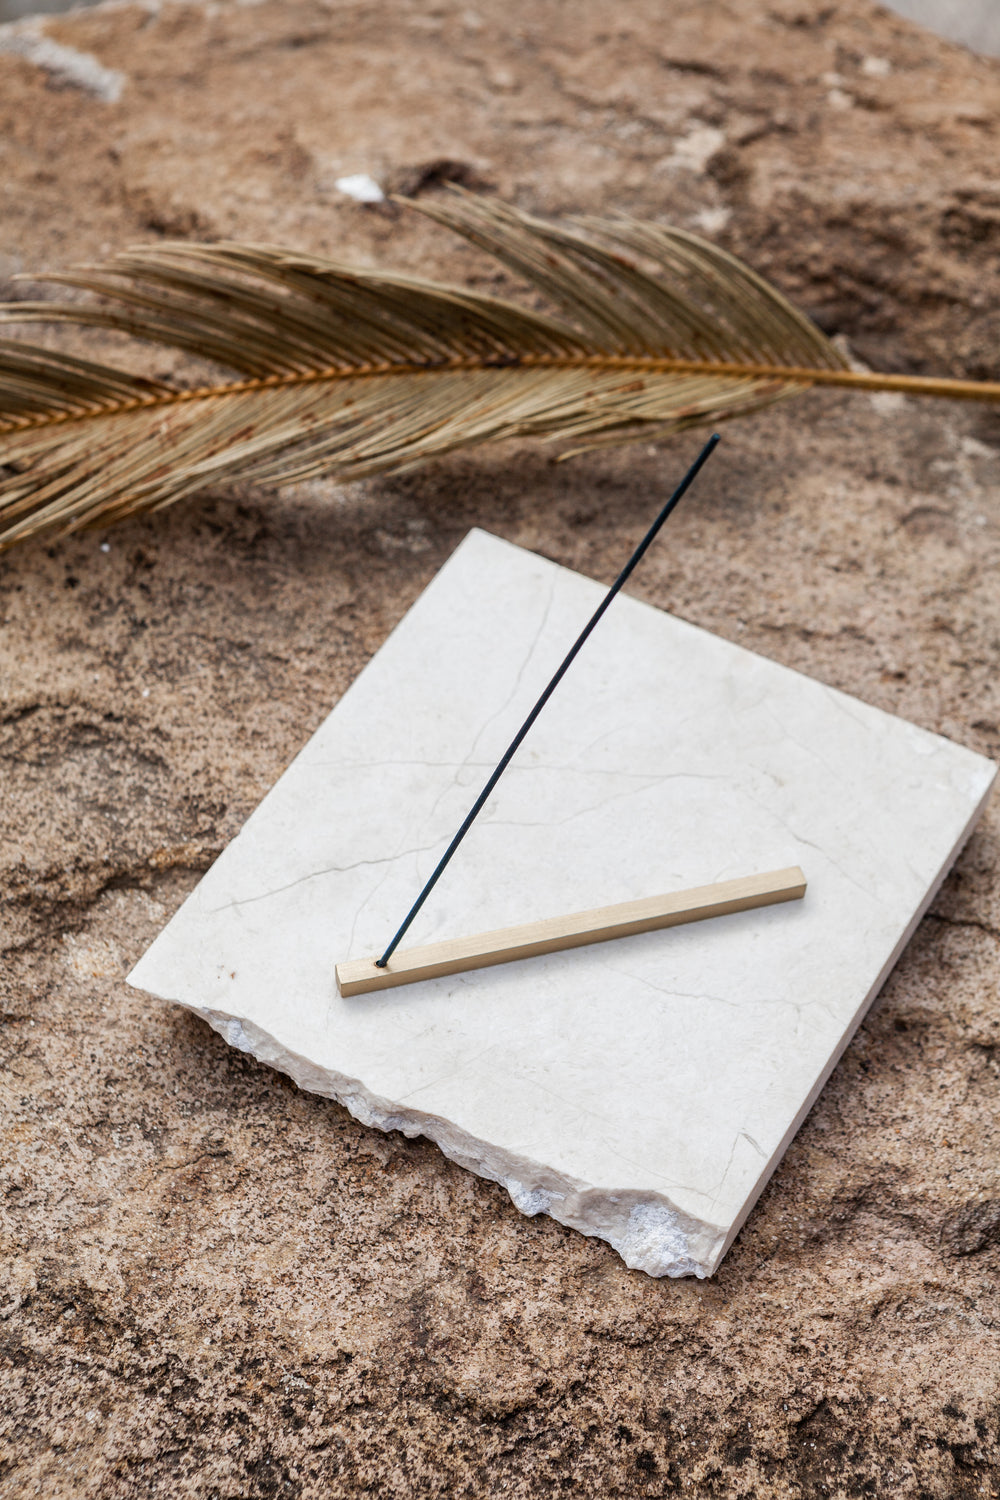 Bo – Incense Sensory Stick Holder